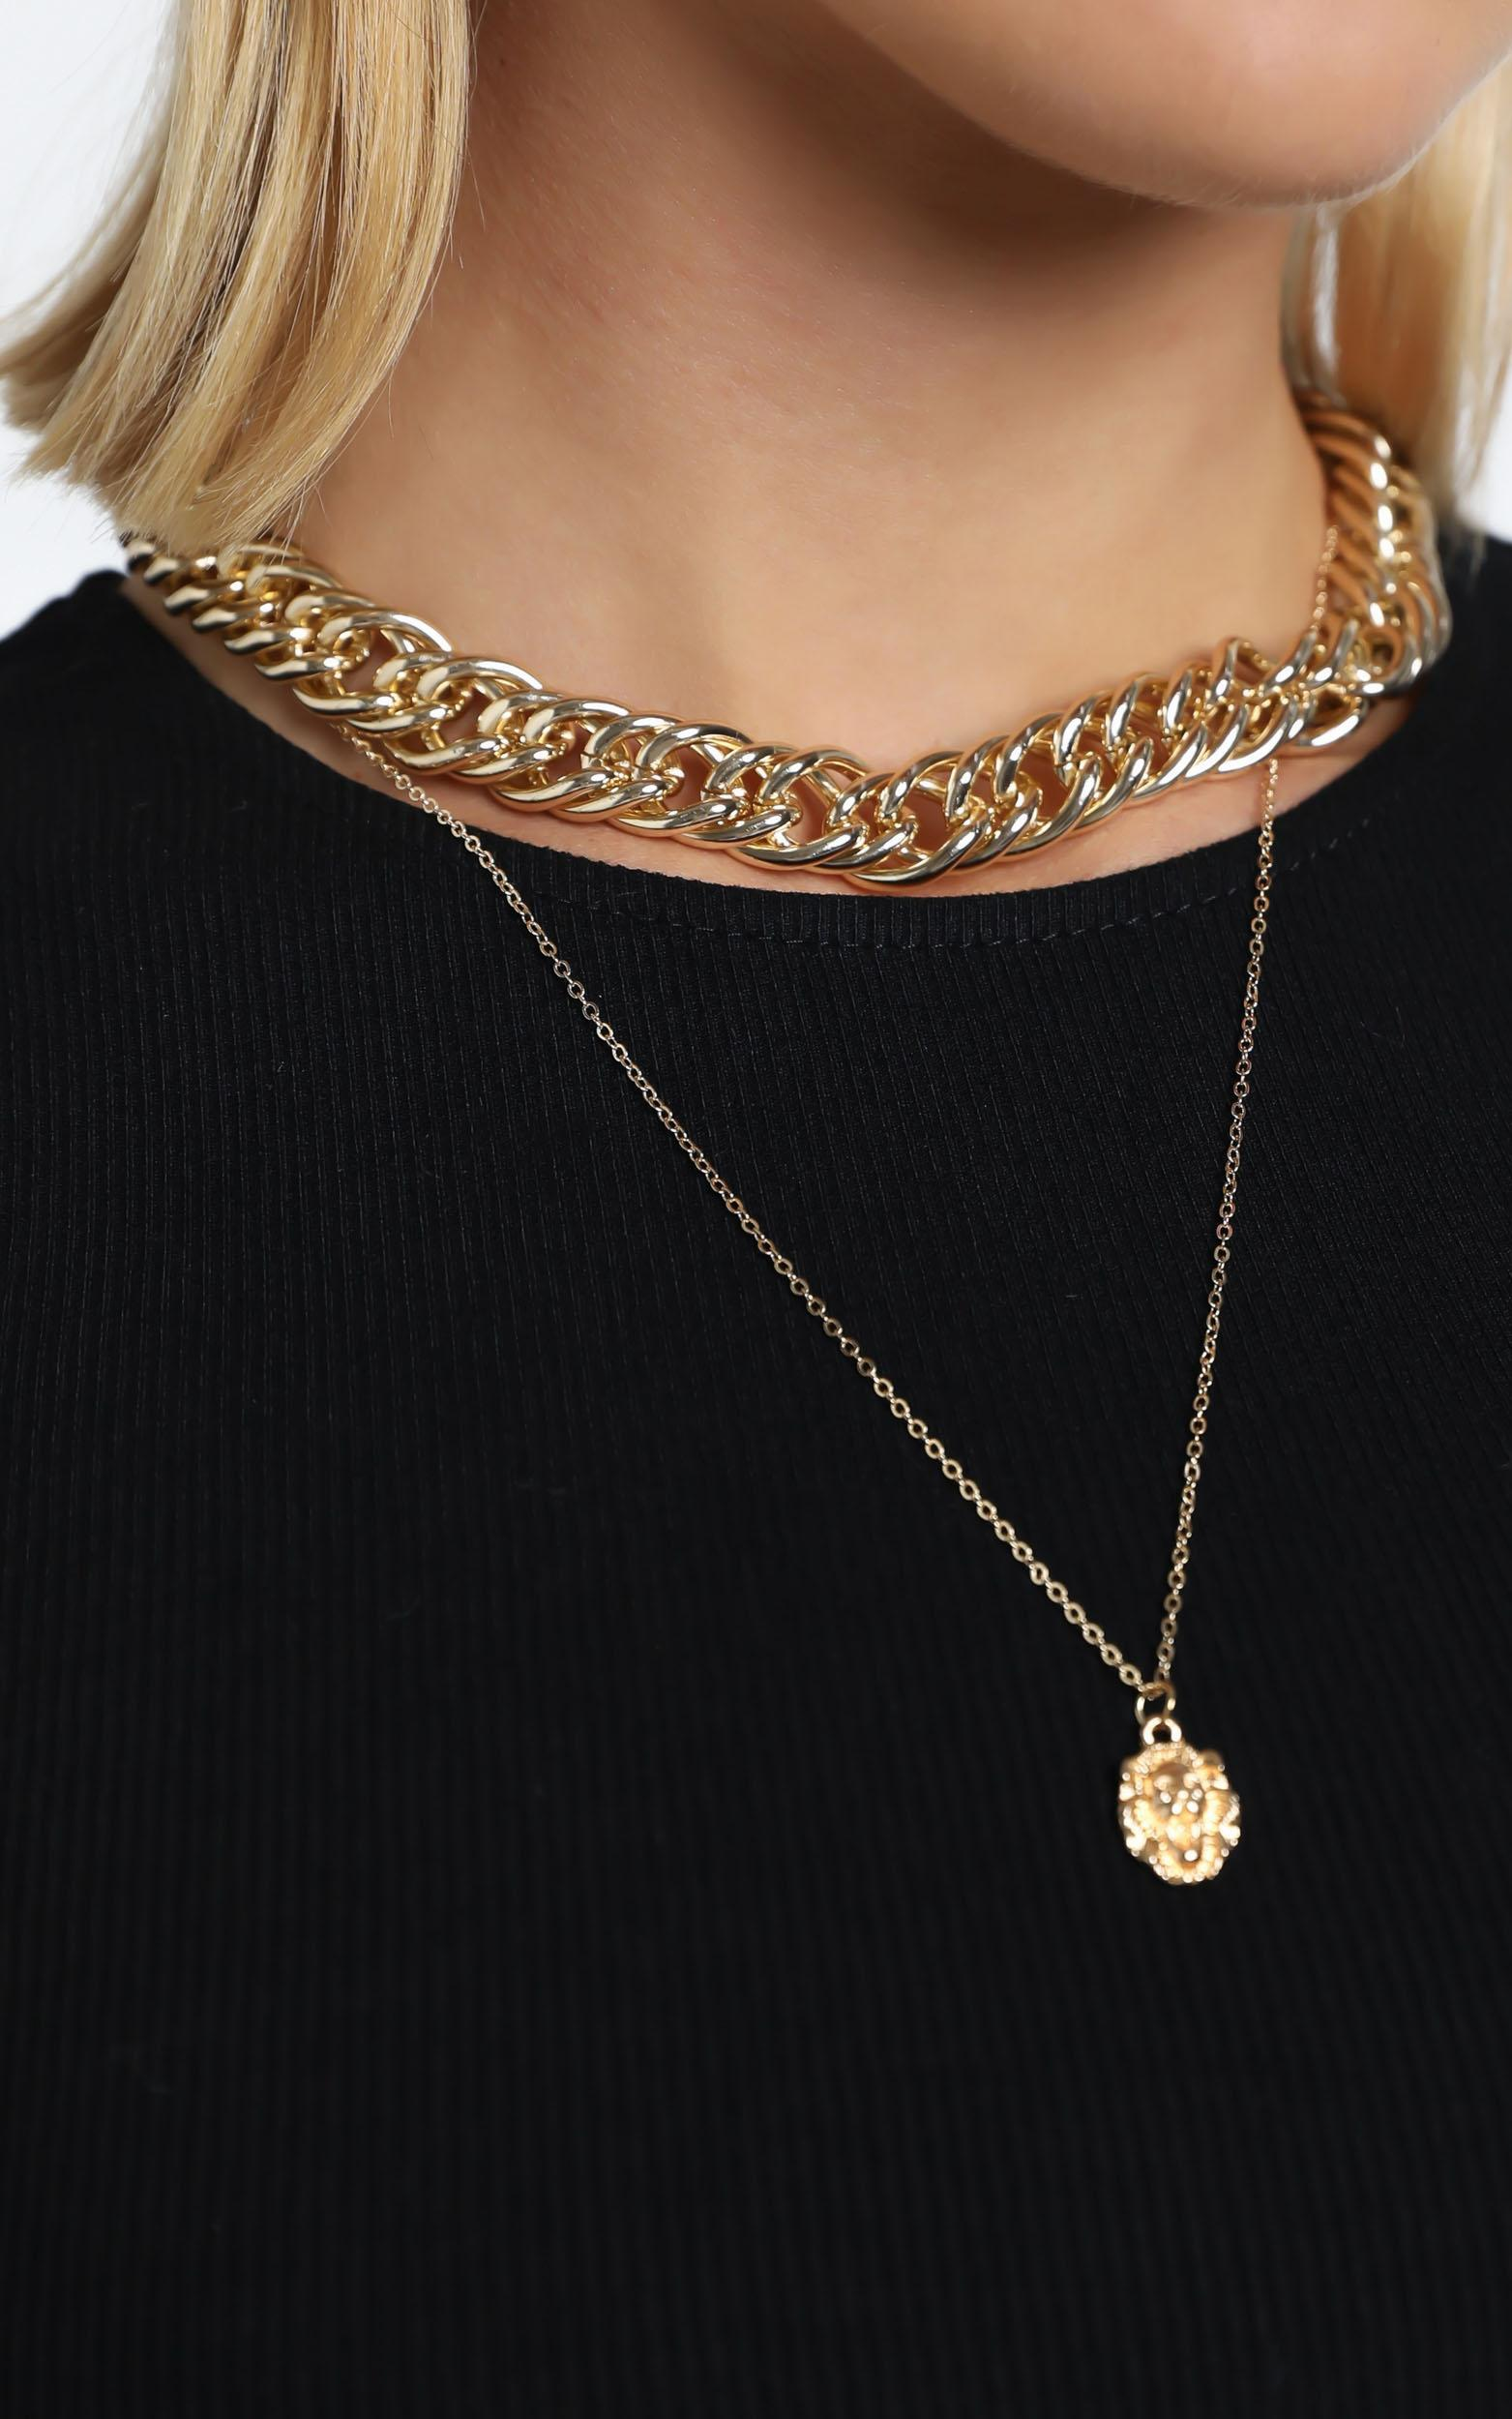 Cleva Necklace in Gold, , hi-res image number null